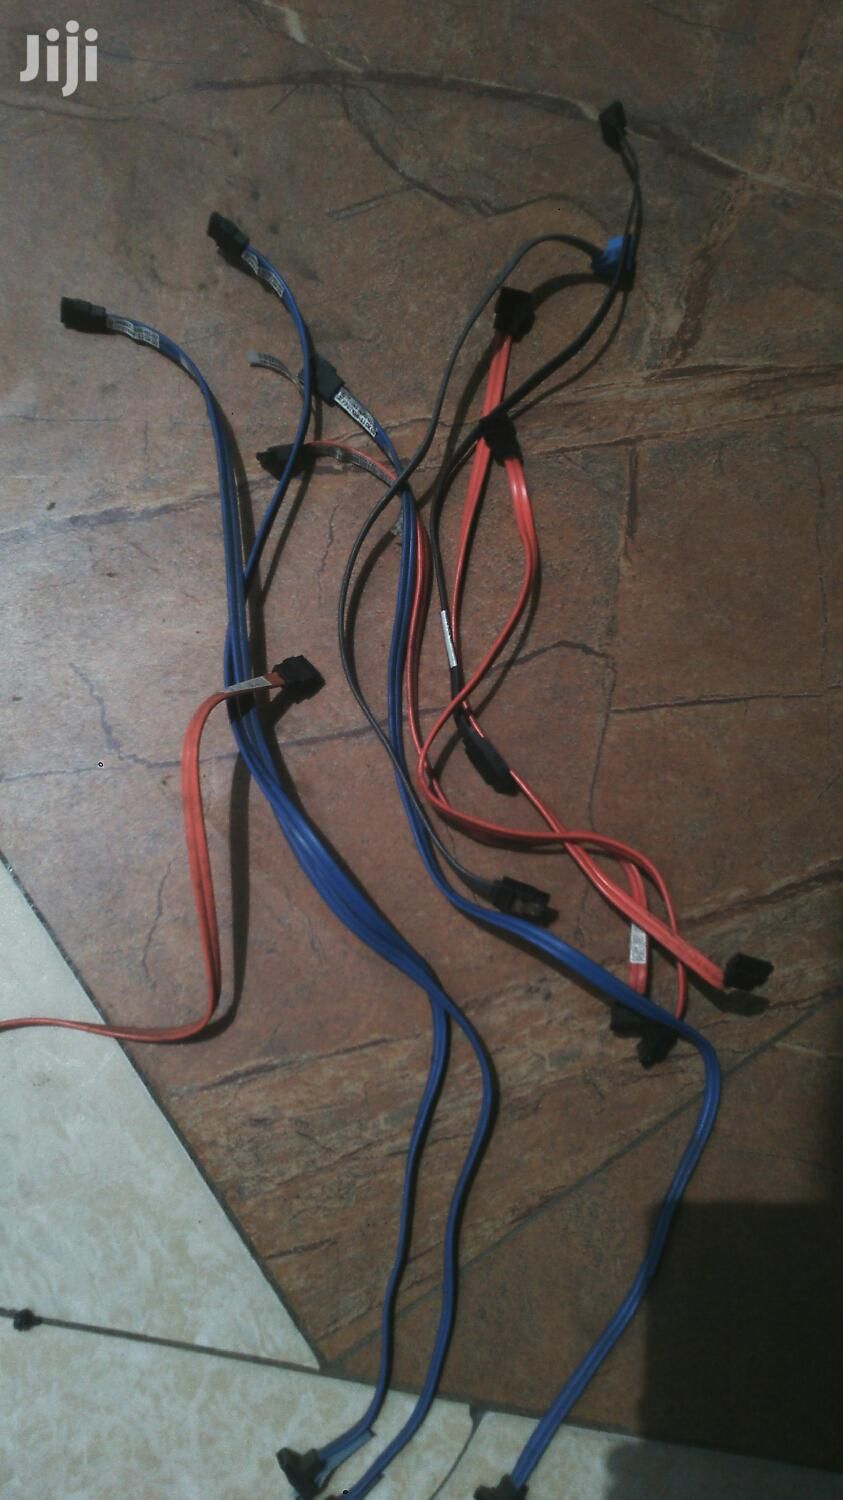 Sata Data Cable   Computer Hardware for sale in Achimota, Greater Accra, Ghana